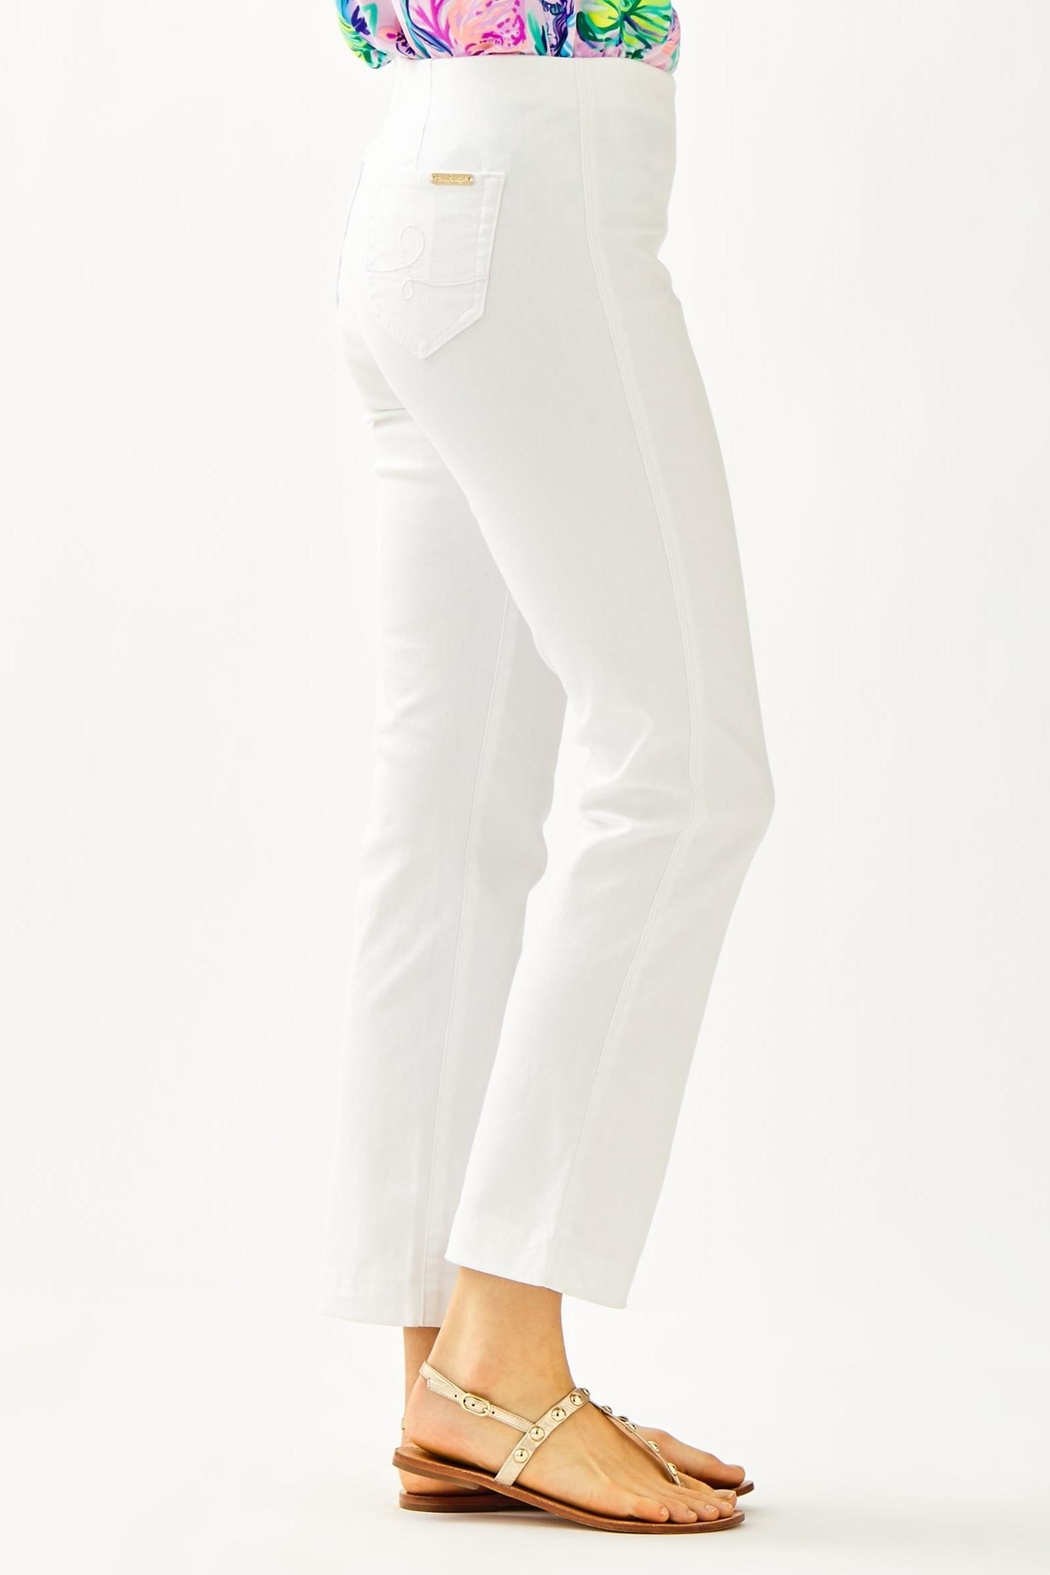 Lilly Pulitzer Ocean Cay Pant - Side Cropped Image